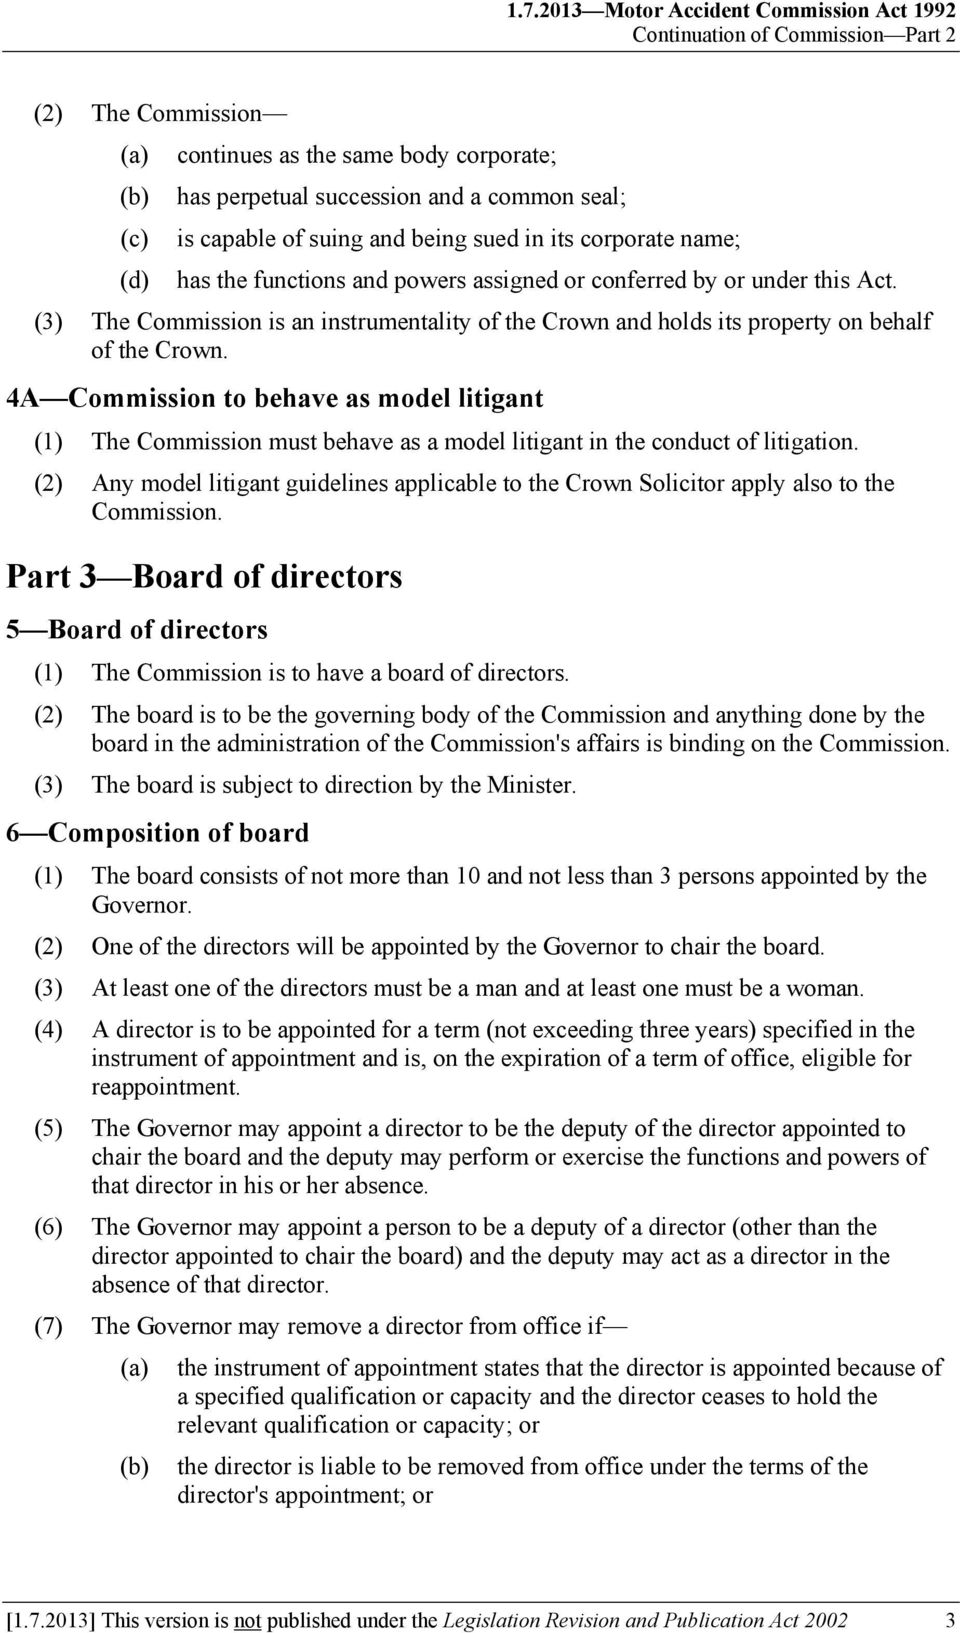 (3) The Commission is an instrumentality of the Crown and holds its property on behalf of the Crown.